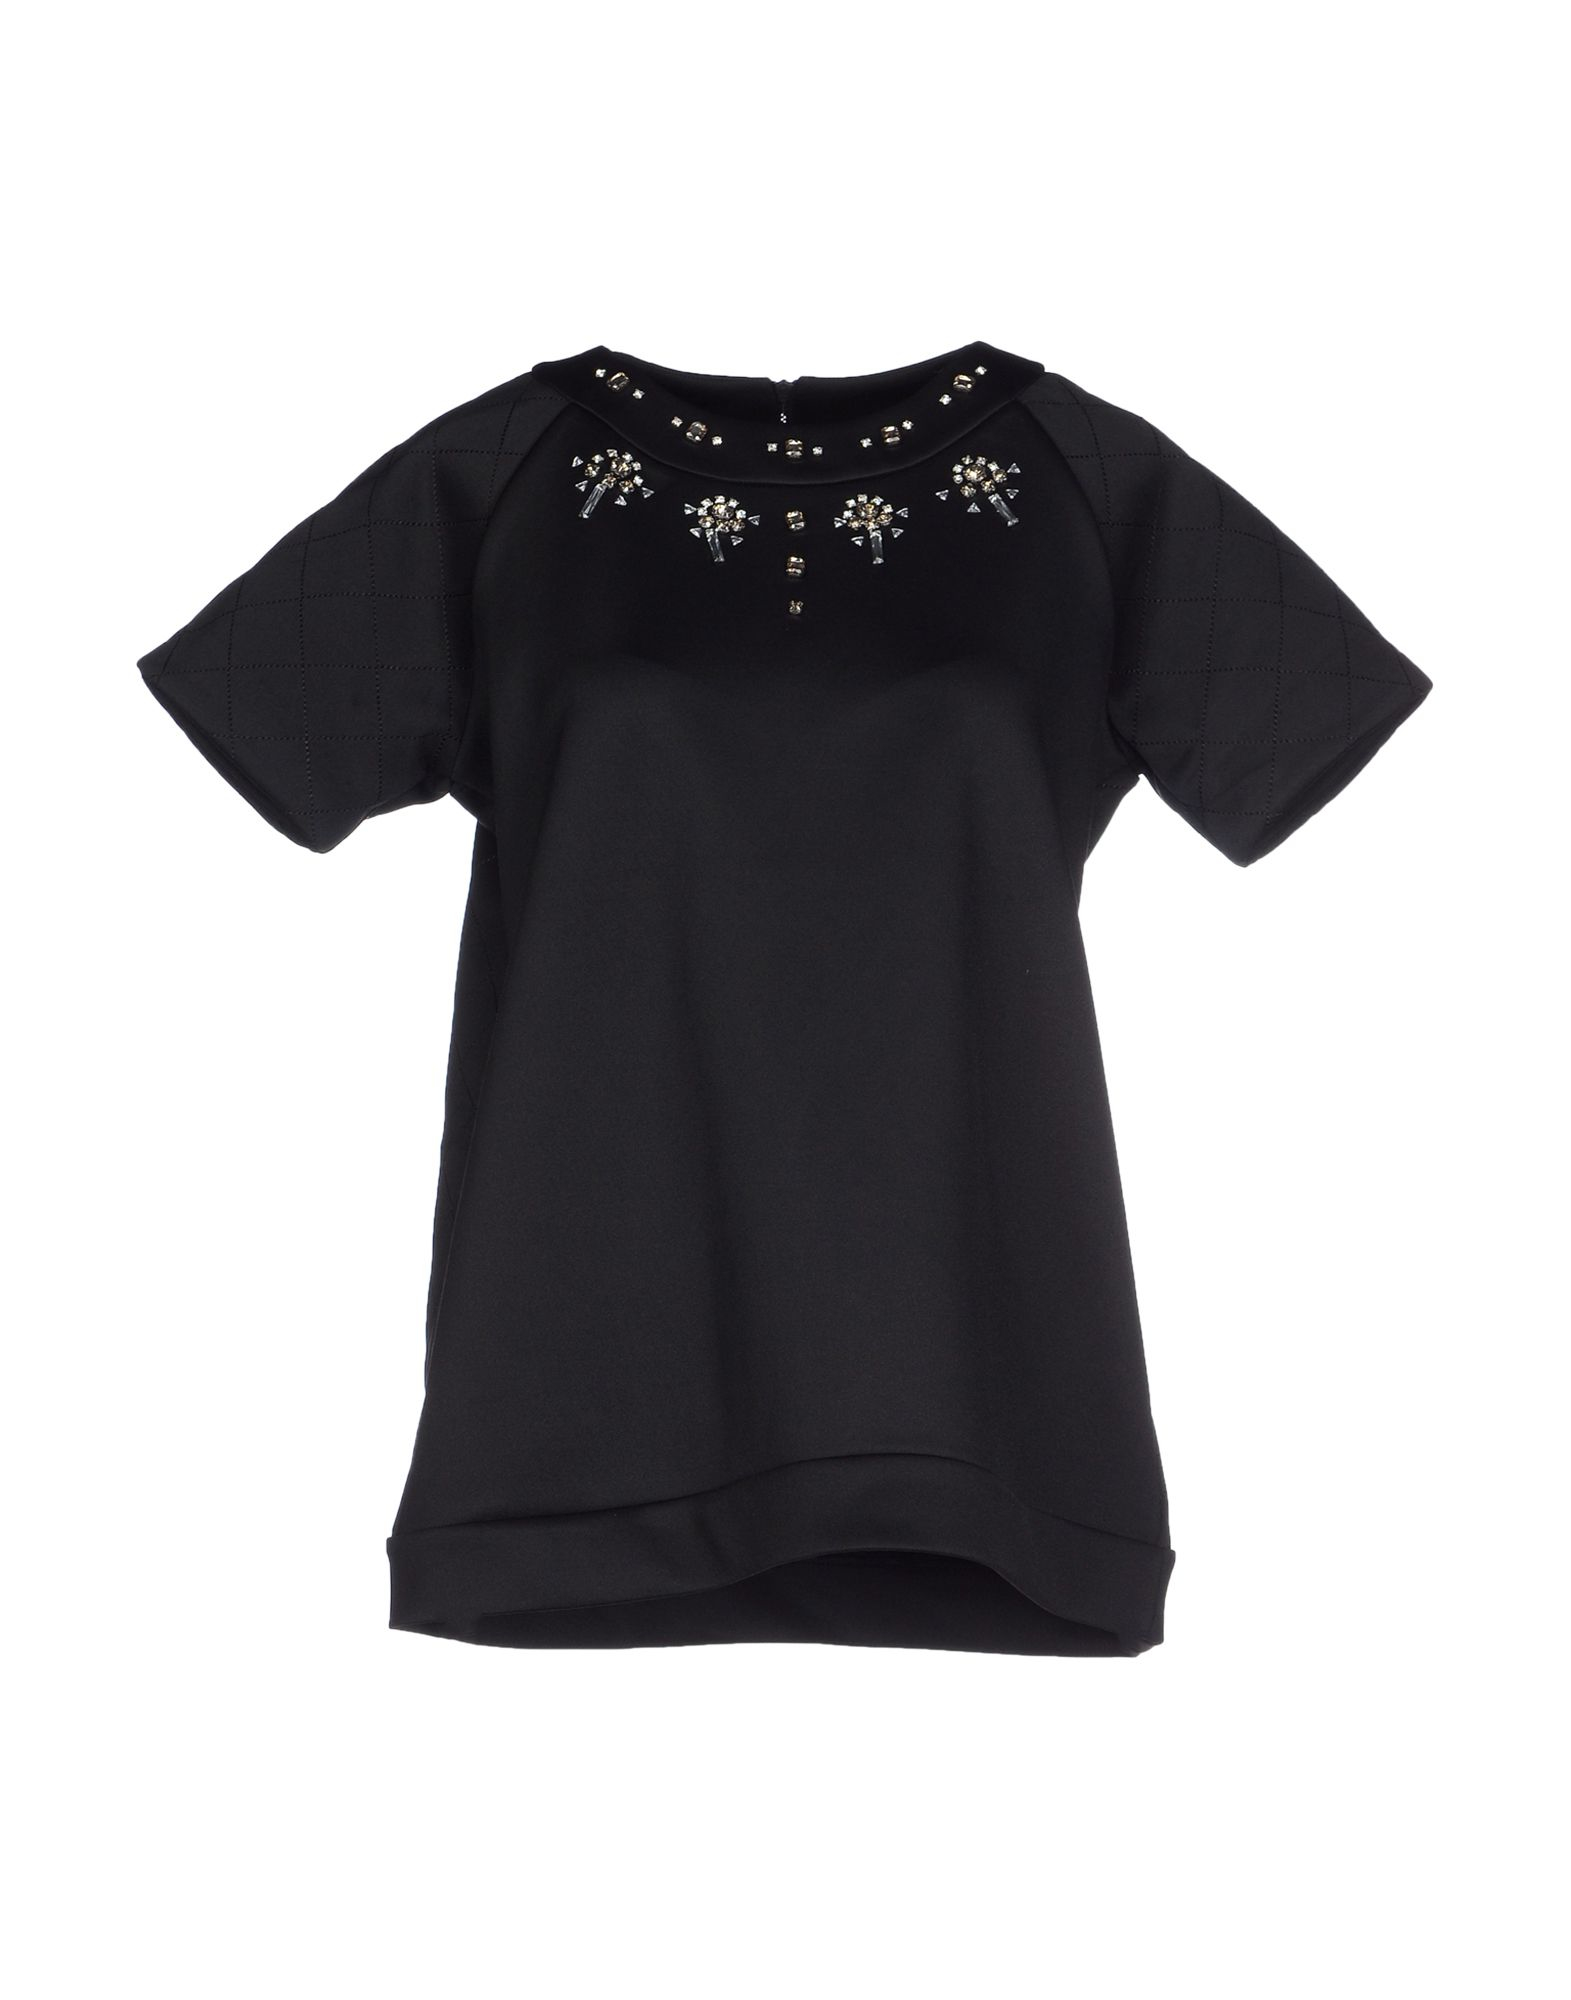 Lyst french connection t shirt in black for French connection t shirt dress